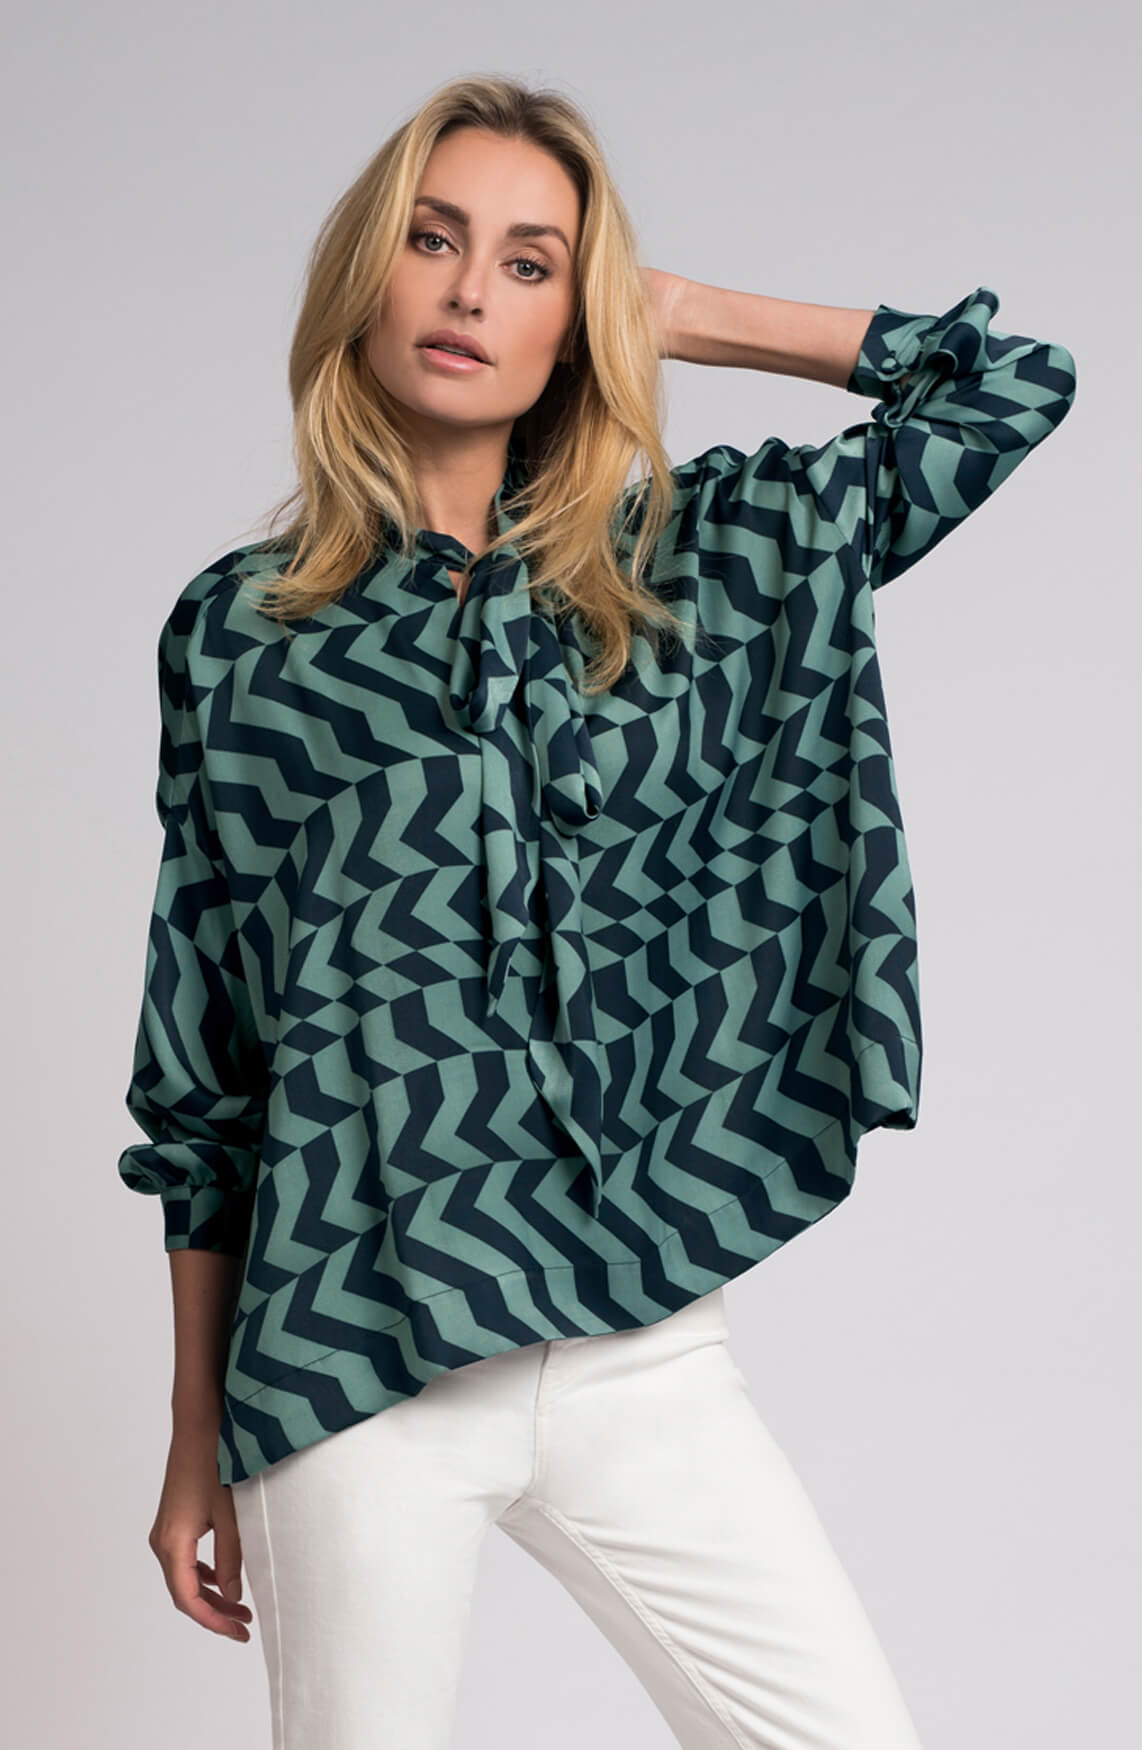 Fifth House Dames Rara zigzag blouse met striksluiting groen